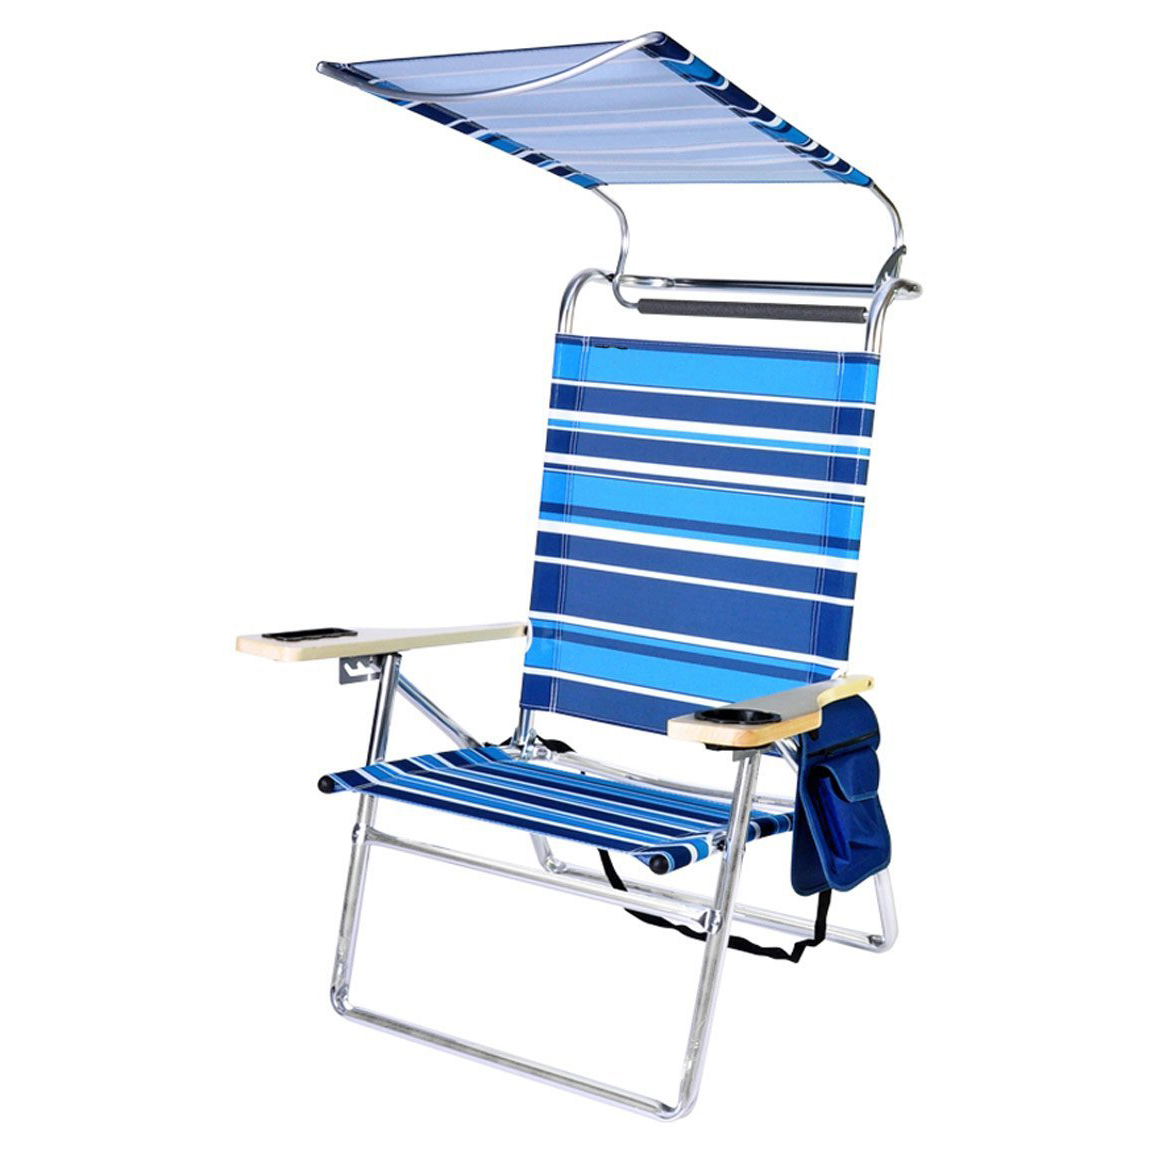 Folding Patio Lounge Beach Chairs With Canopy Within Most Popular Deluxe 4 Position Beach Chair Lounge Aluminum Lounger Folding Camping Outdoor Garden Sun Roof Shade Patio Beach With Canopy – Buy Beach Lounge Chair (View 11 of 25)